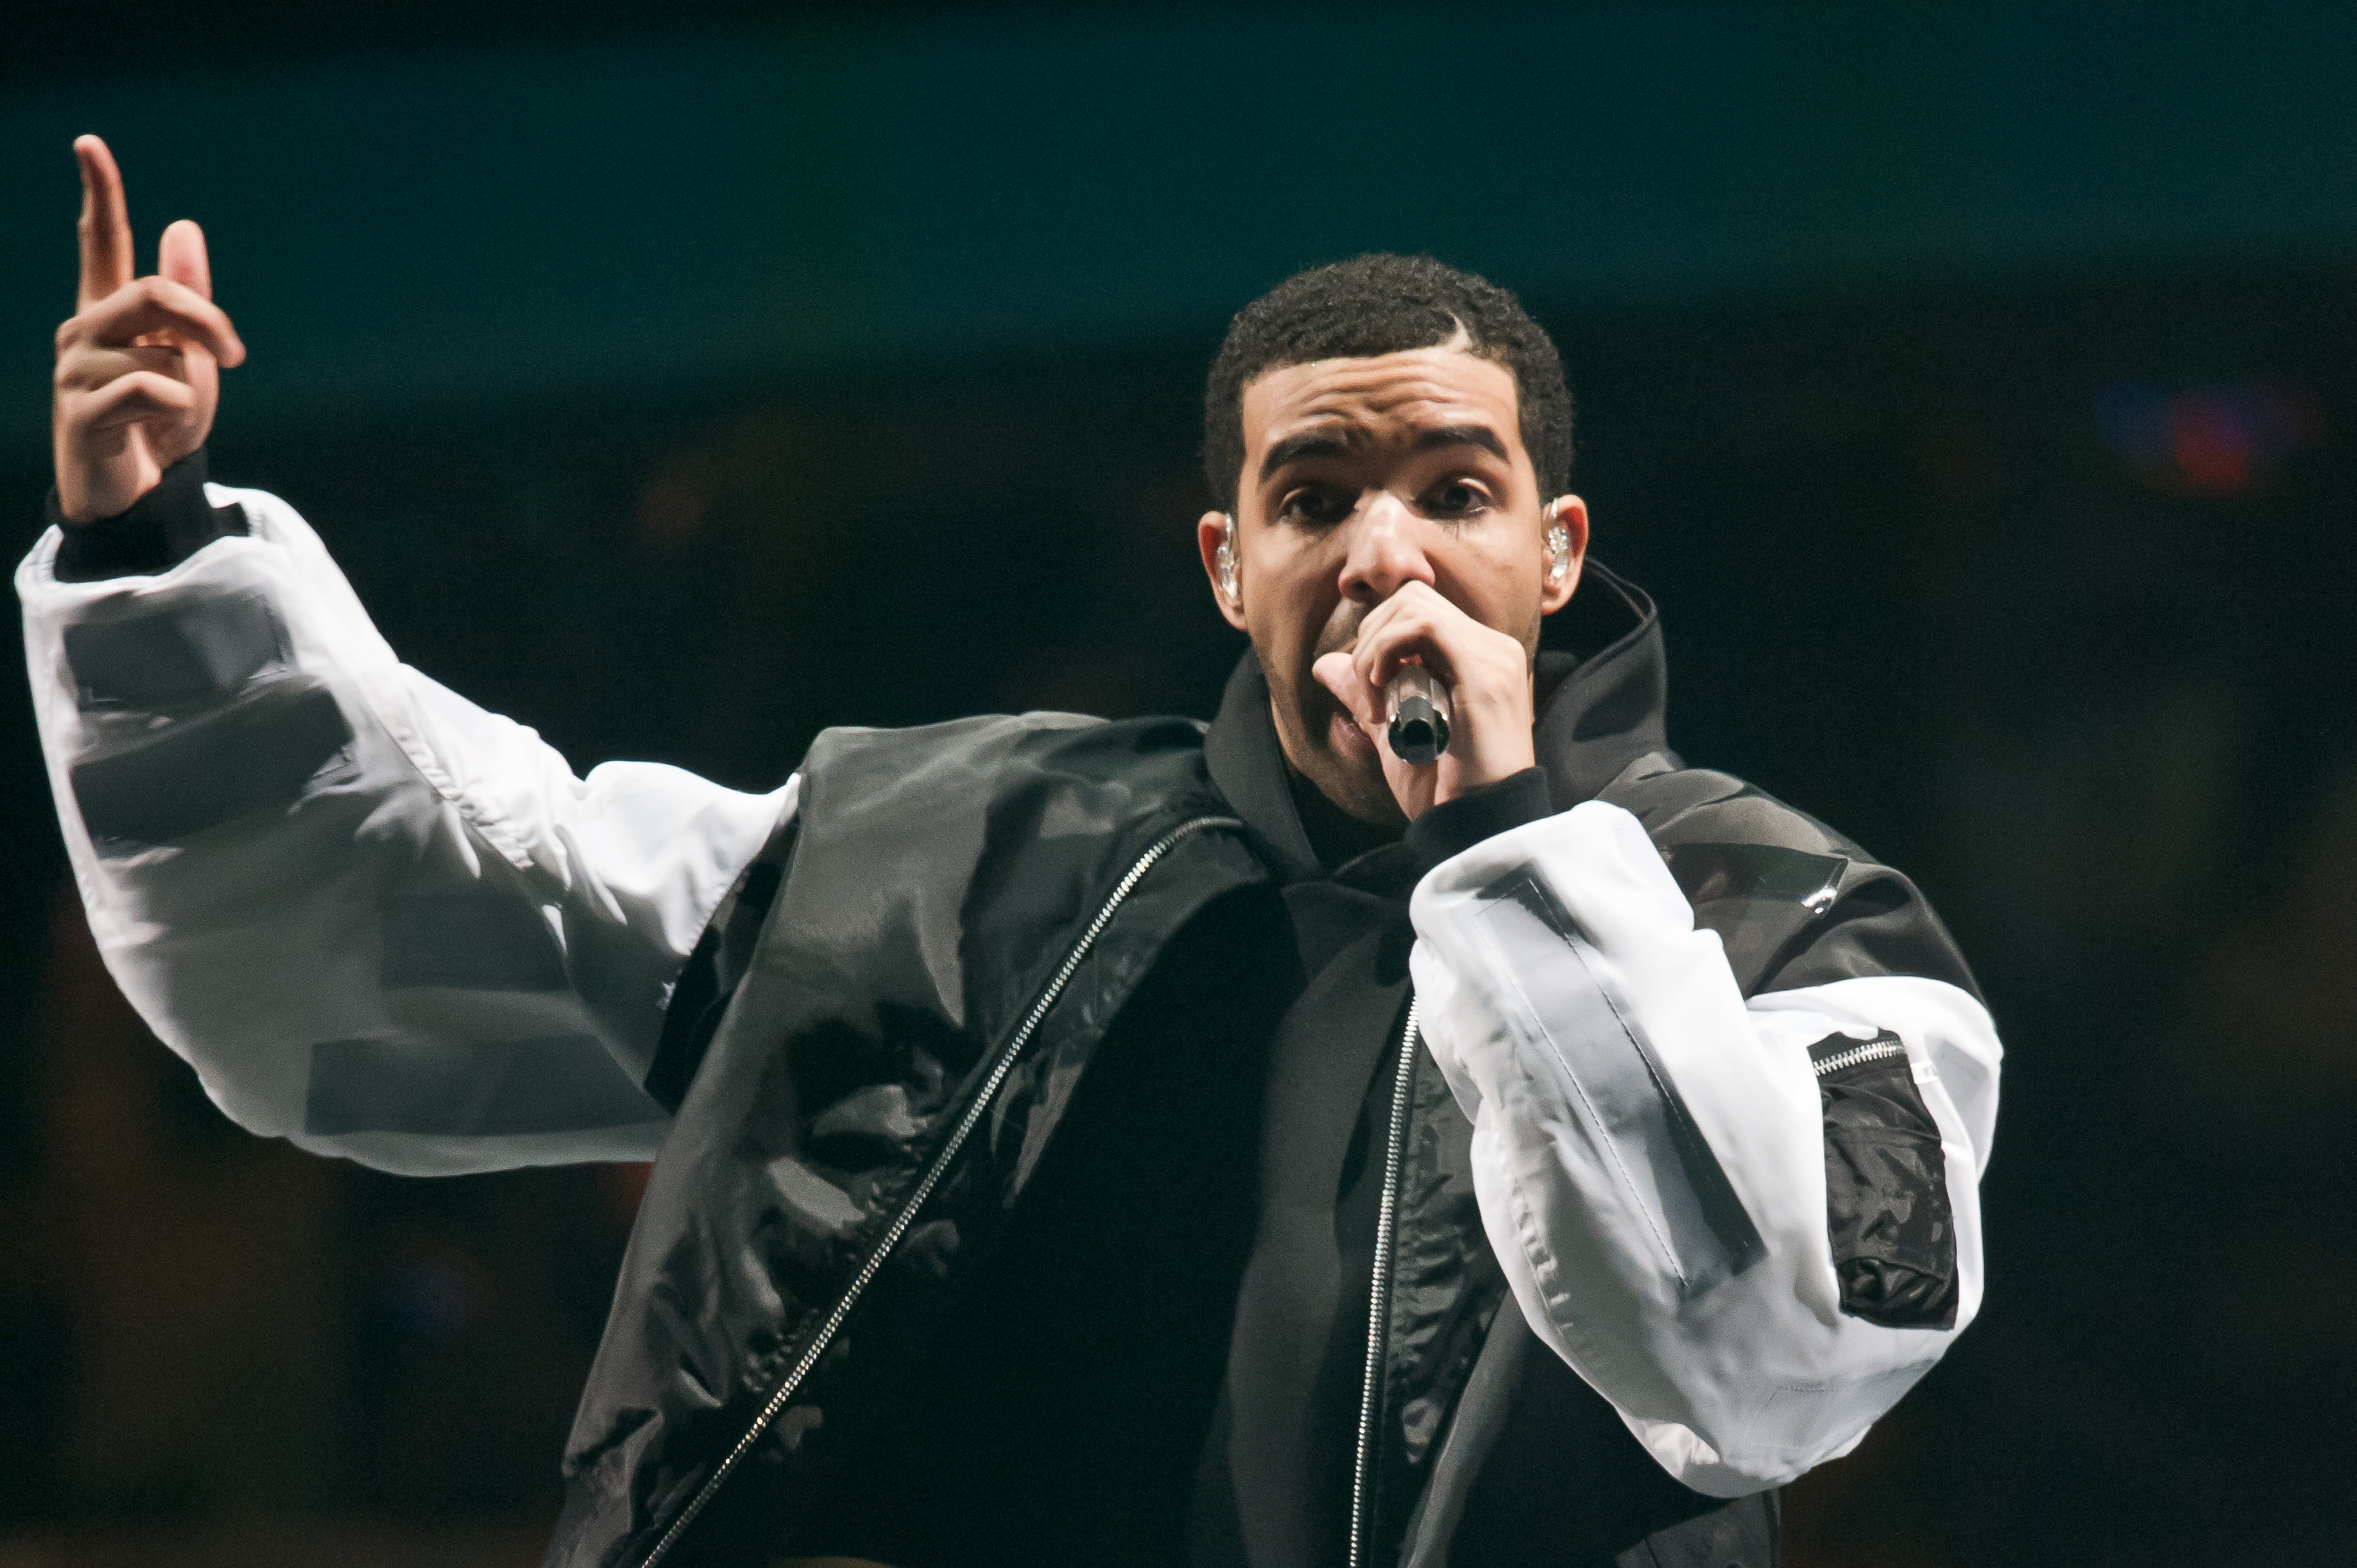 Drake performs on stage at O2 Arena on March 24, 2014 in London.